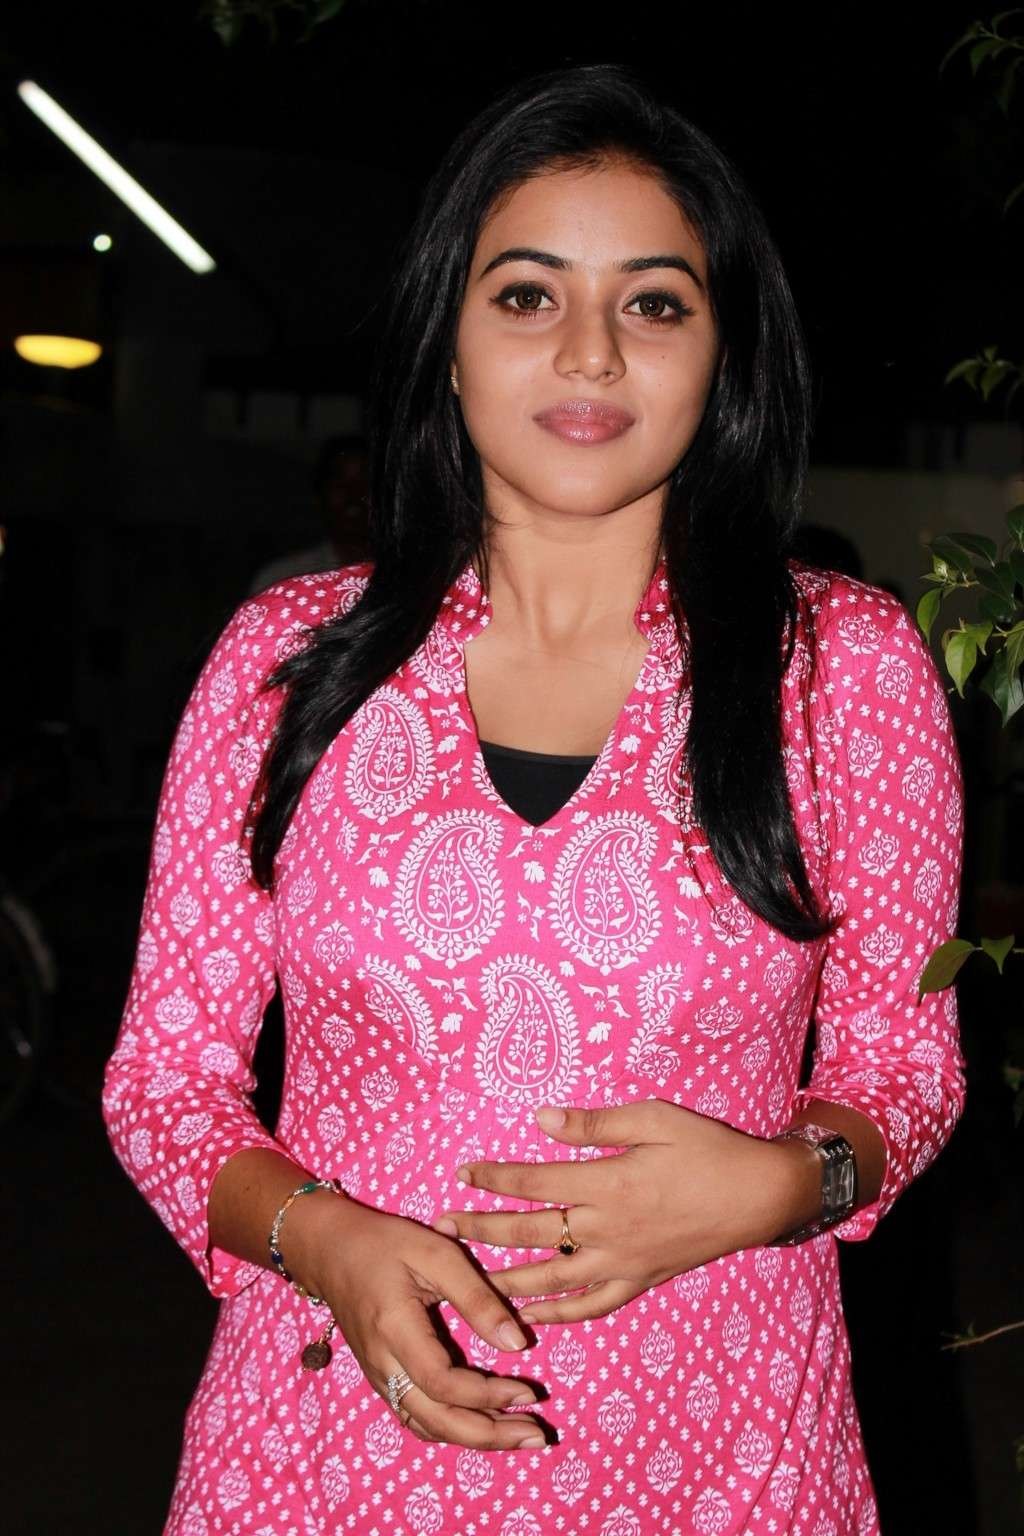 Poorna Bright in Pink Top Poorna23